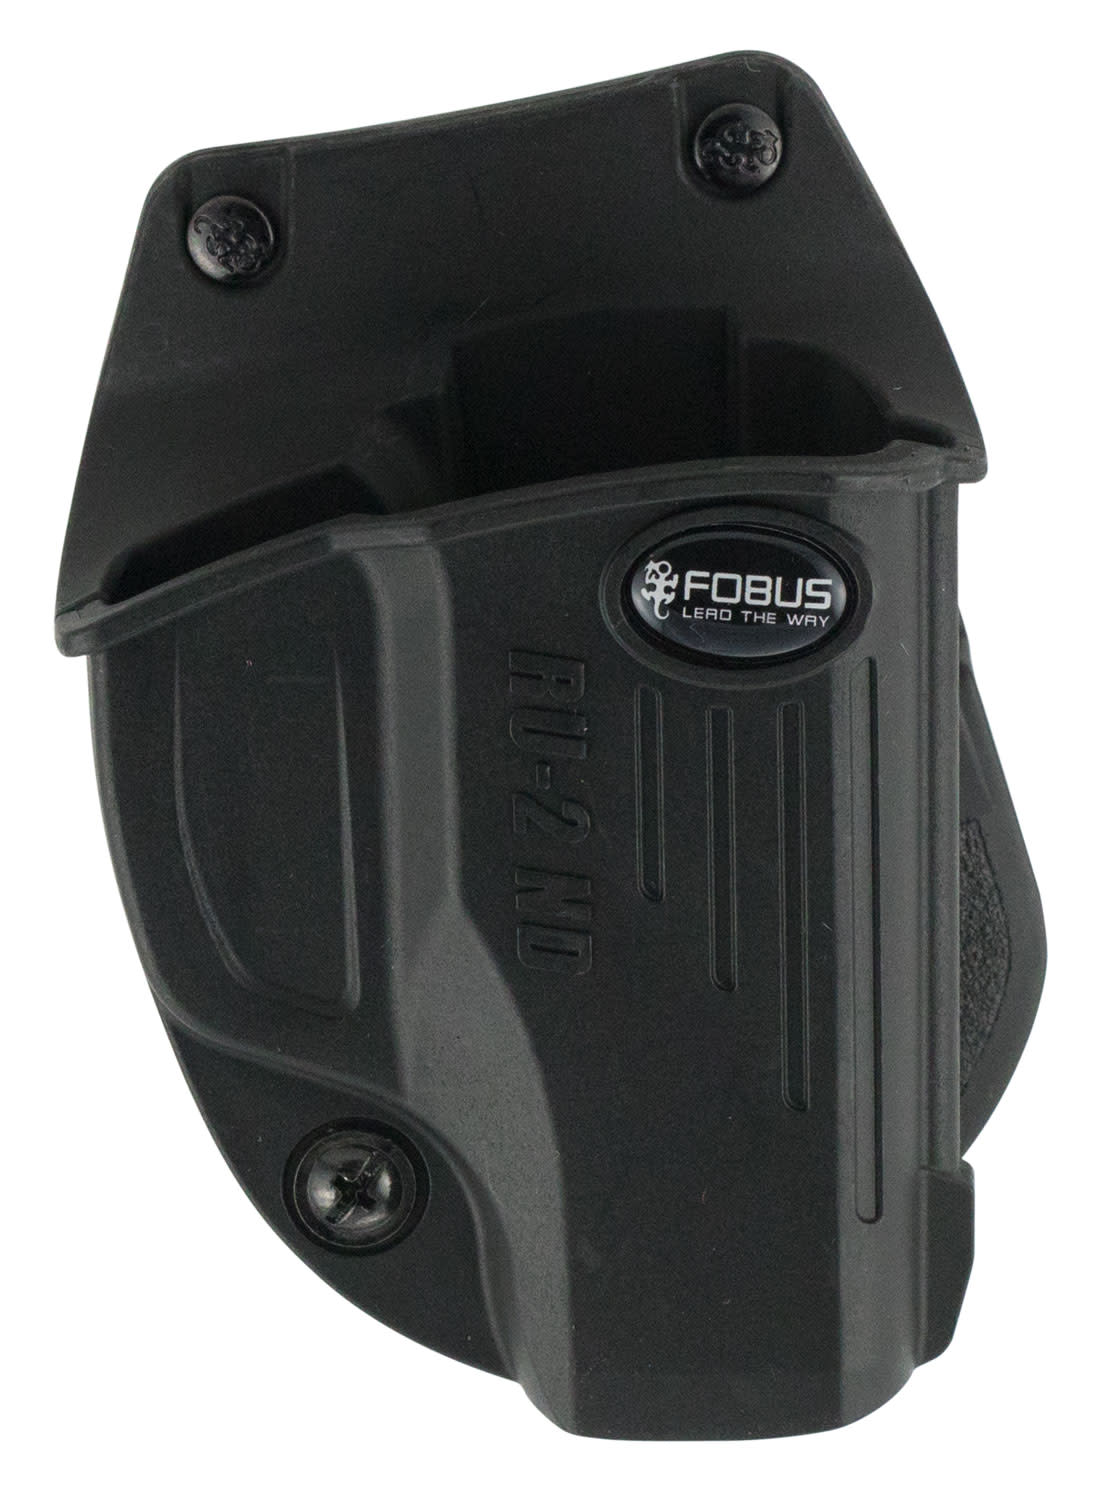 Fobus Evolution Paddle Holster - Grand Power PK1-MK12